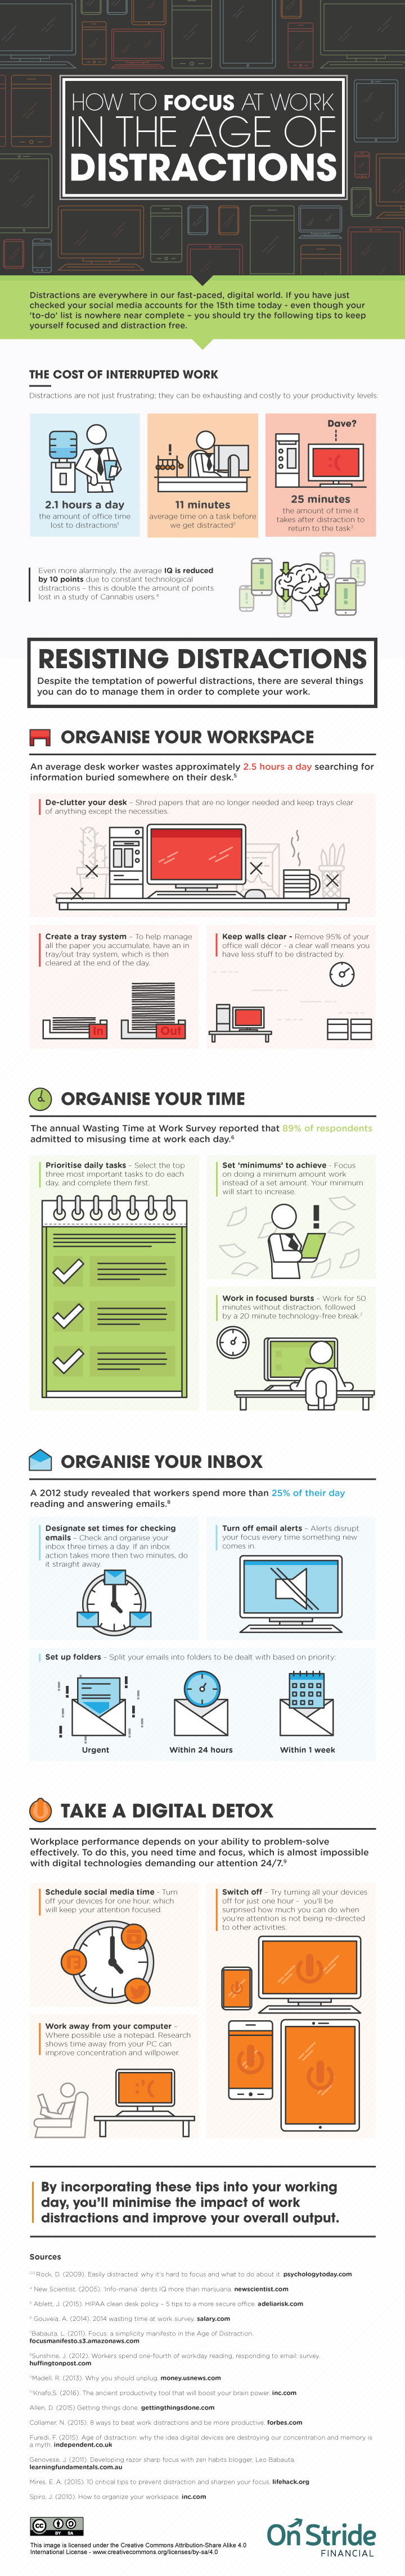 how to focus at work infographic